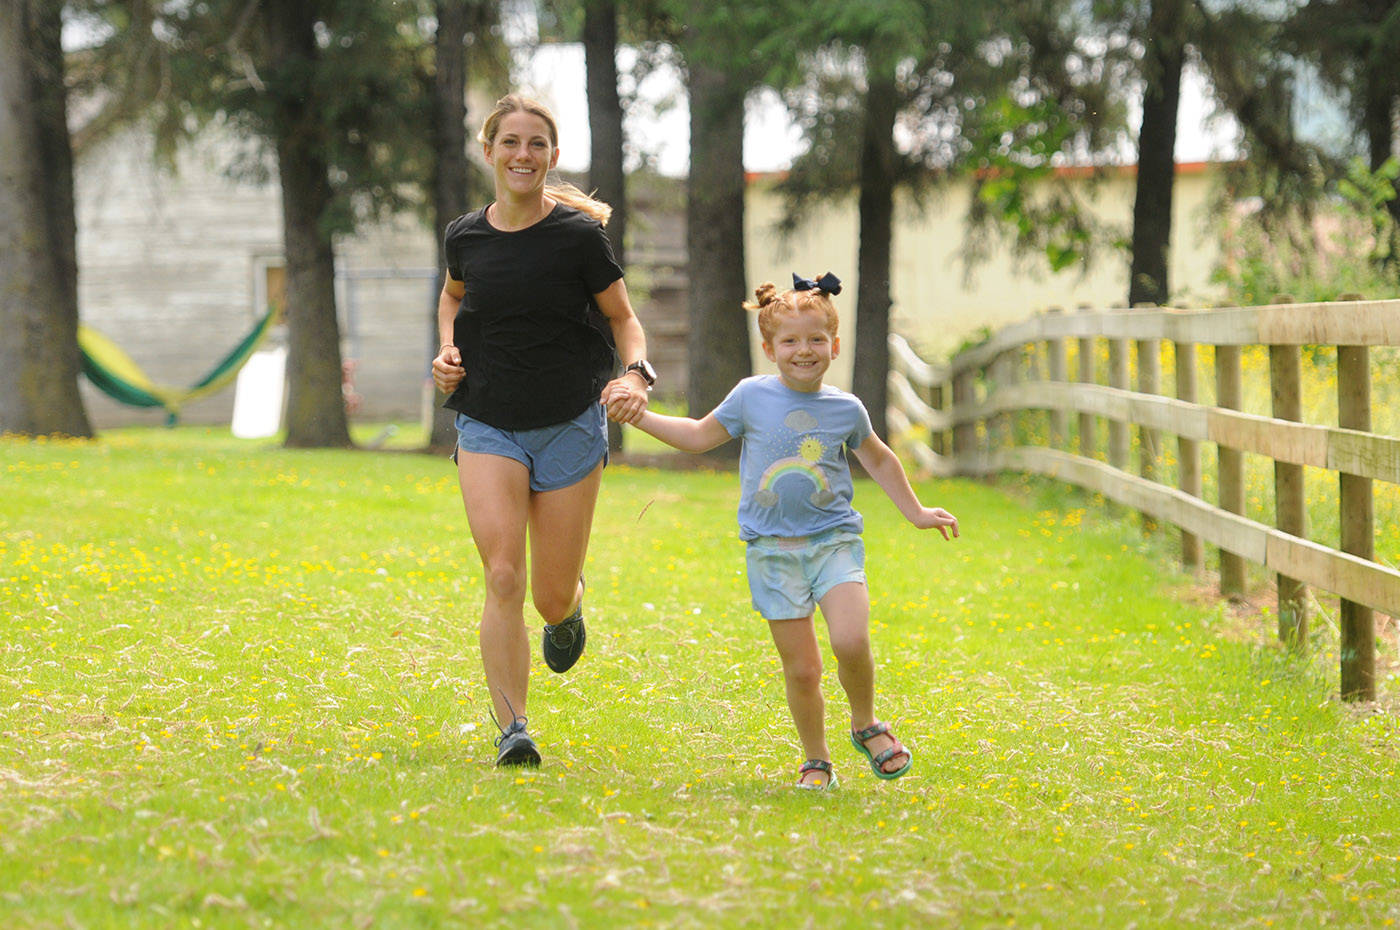 """Kalyn Head, nanny to five-year-old Jenny Francis, will be running 100 kilometres for her """"birthday marathon"""" on July 23. They are seen here on June 4, 2021. (Jenna Hauck/ Chilliwack Progress)"""